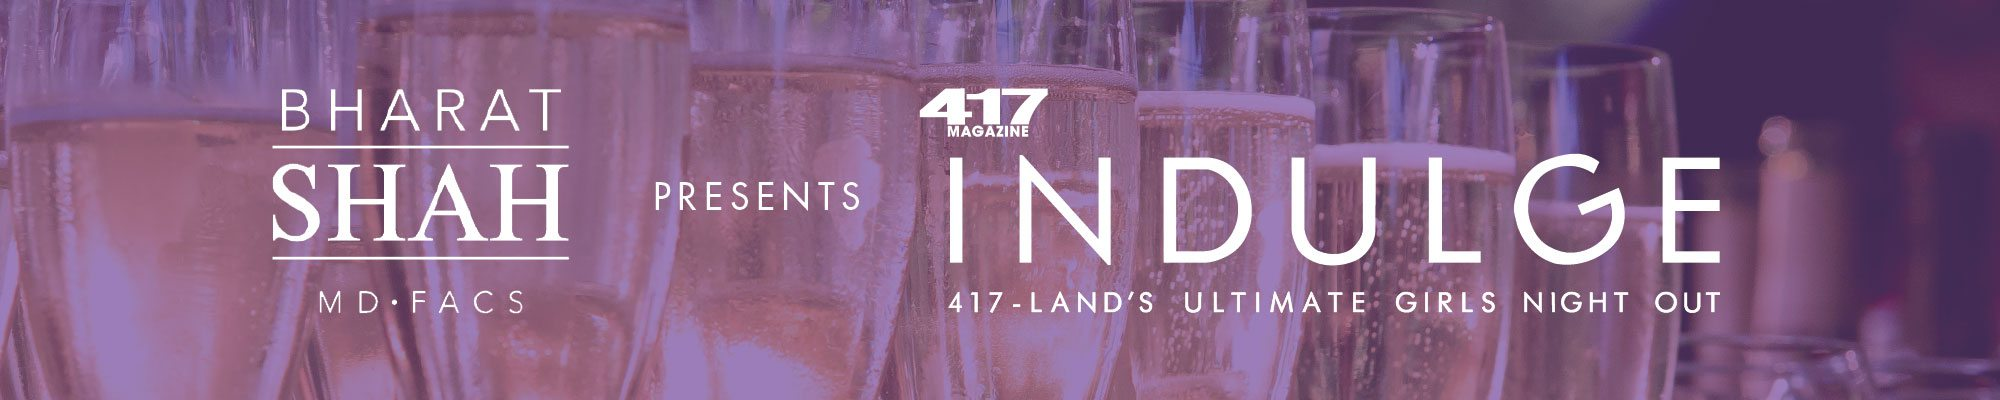 417 Magazine's Indulge presented by Bharat Shah MD, FACS